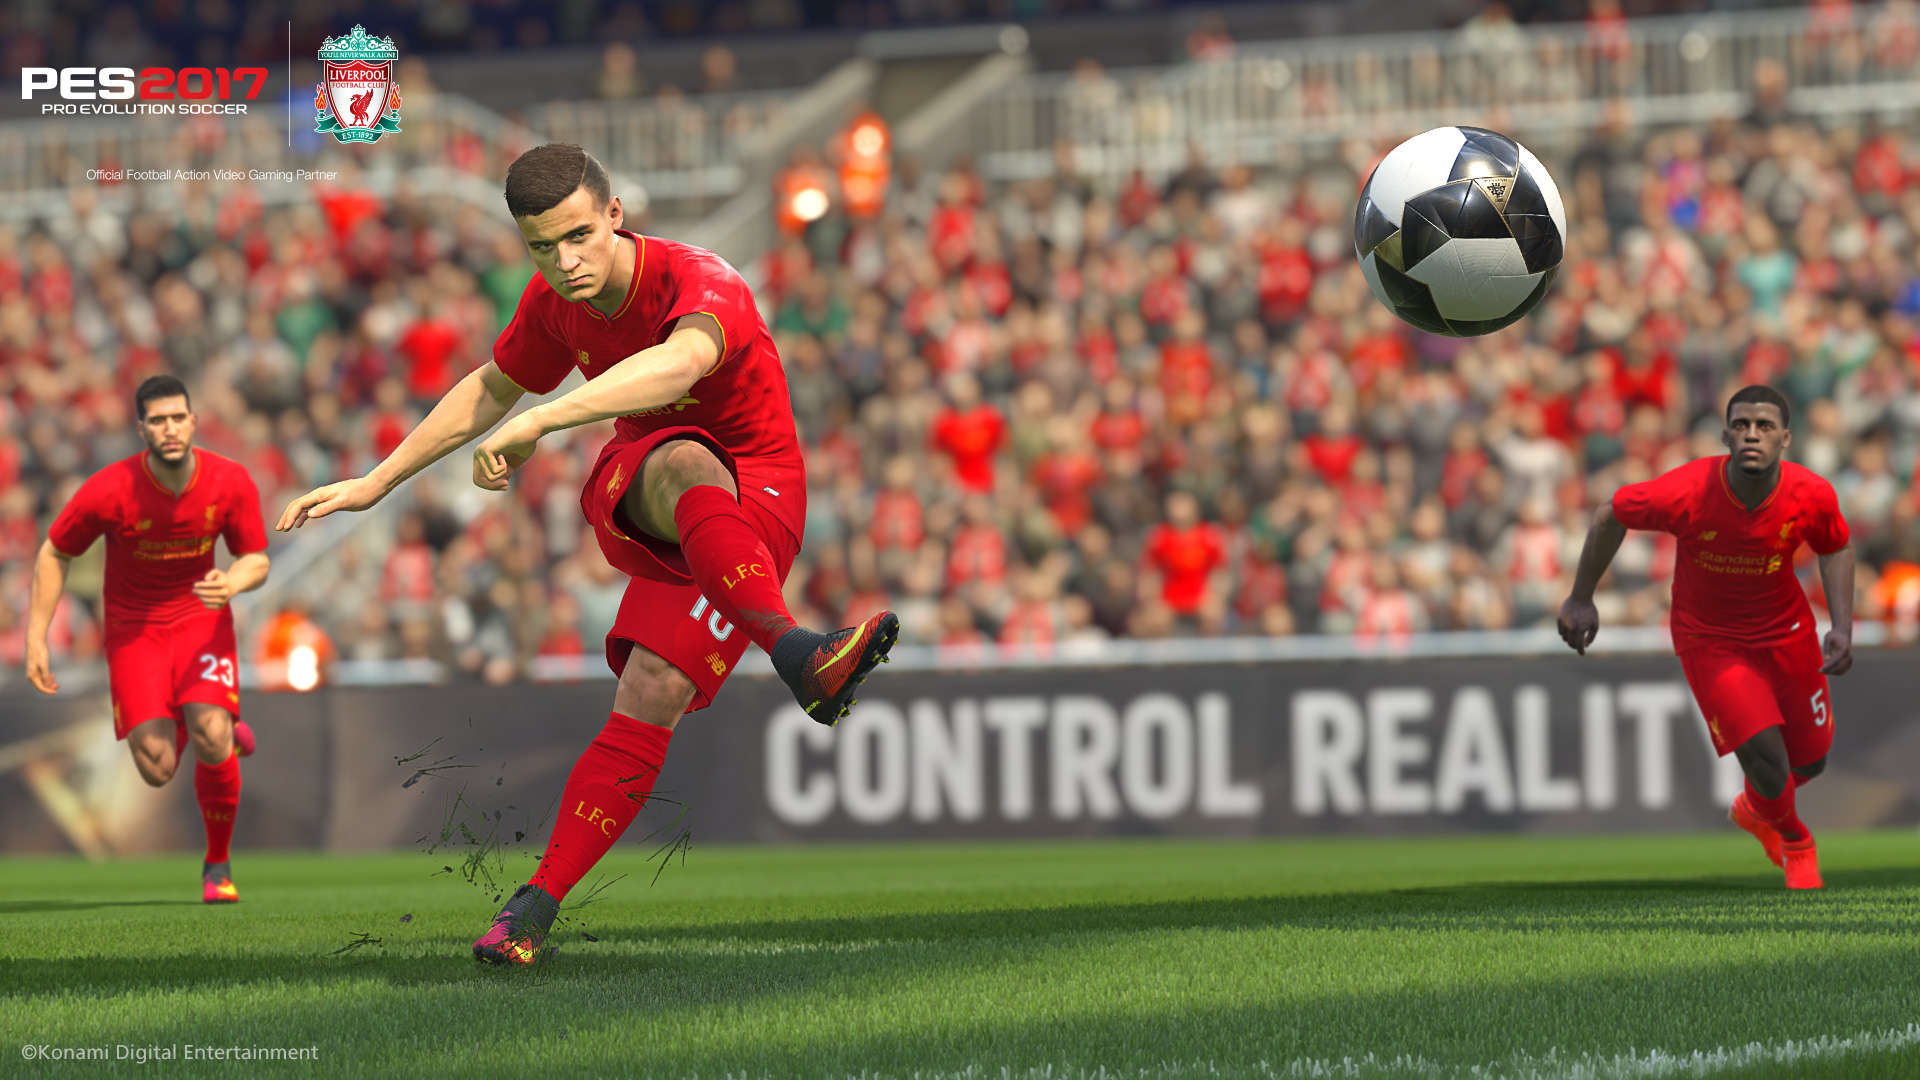 PES 2017: In arrivo il Data Pack 3